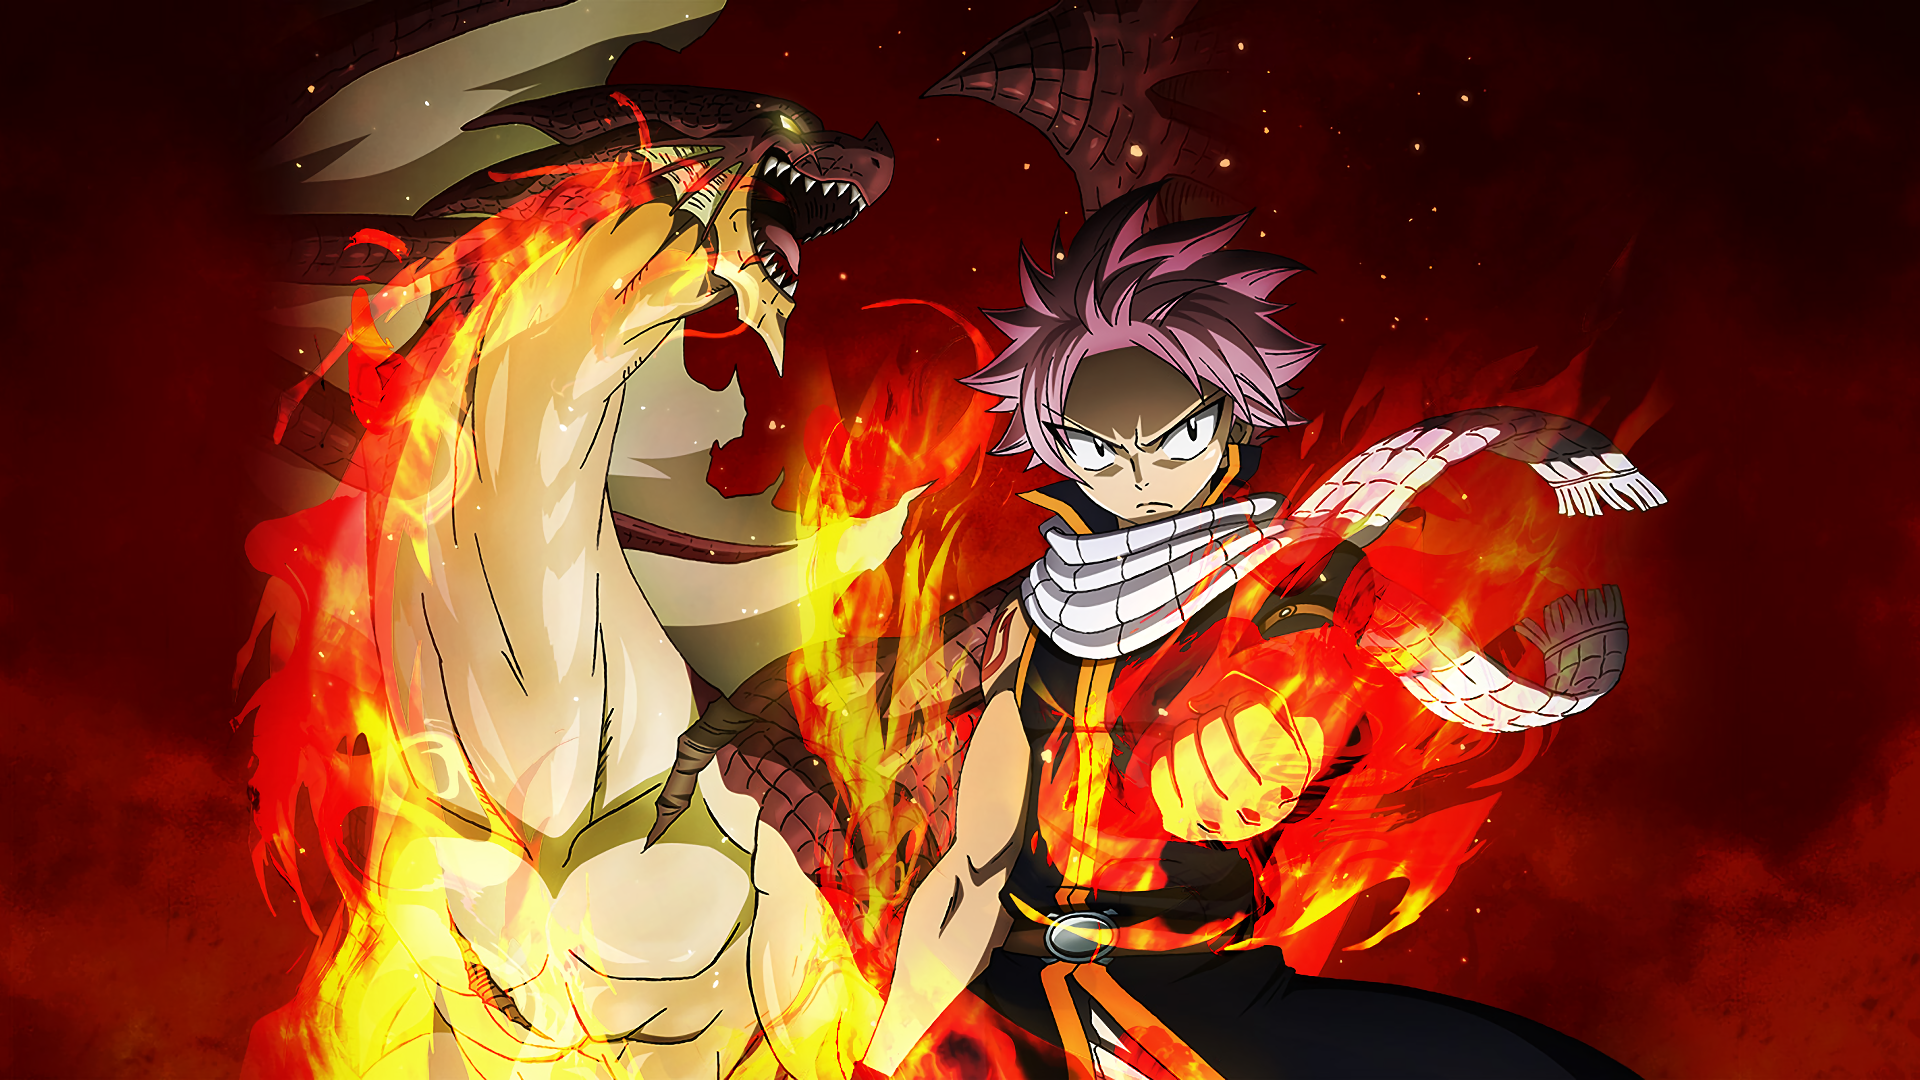 10 Igneel Fairy Tail Hd Wallpapers Background Images